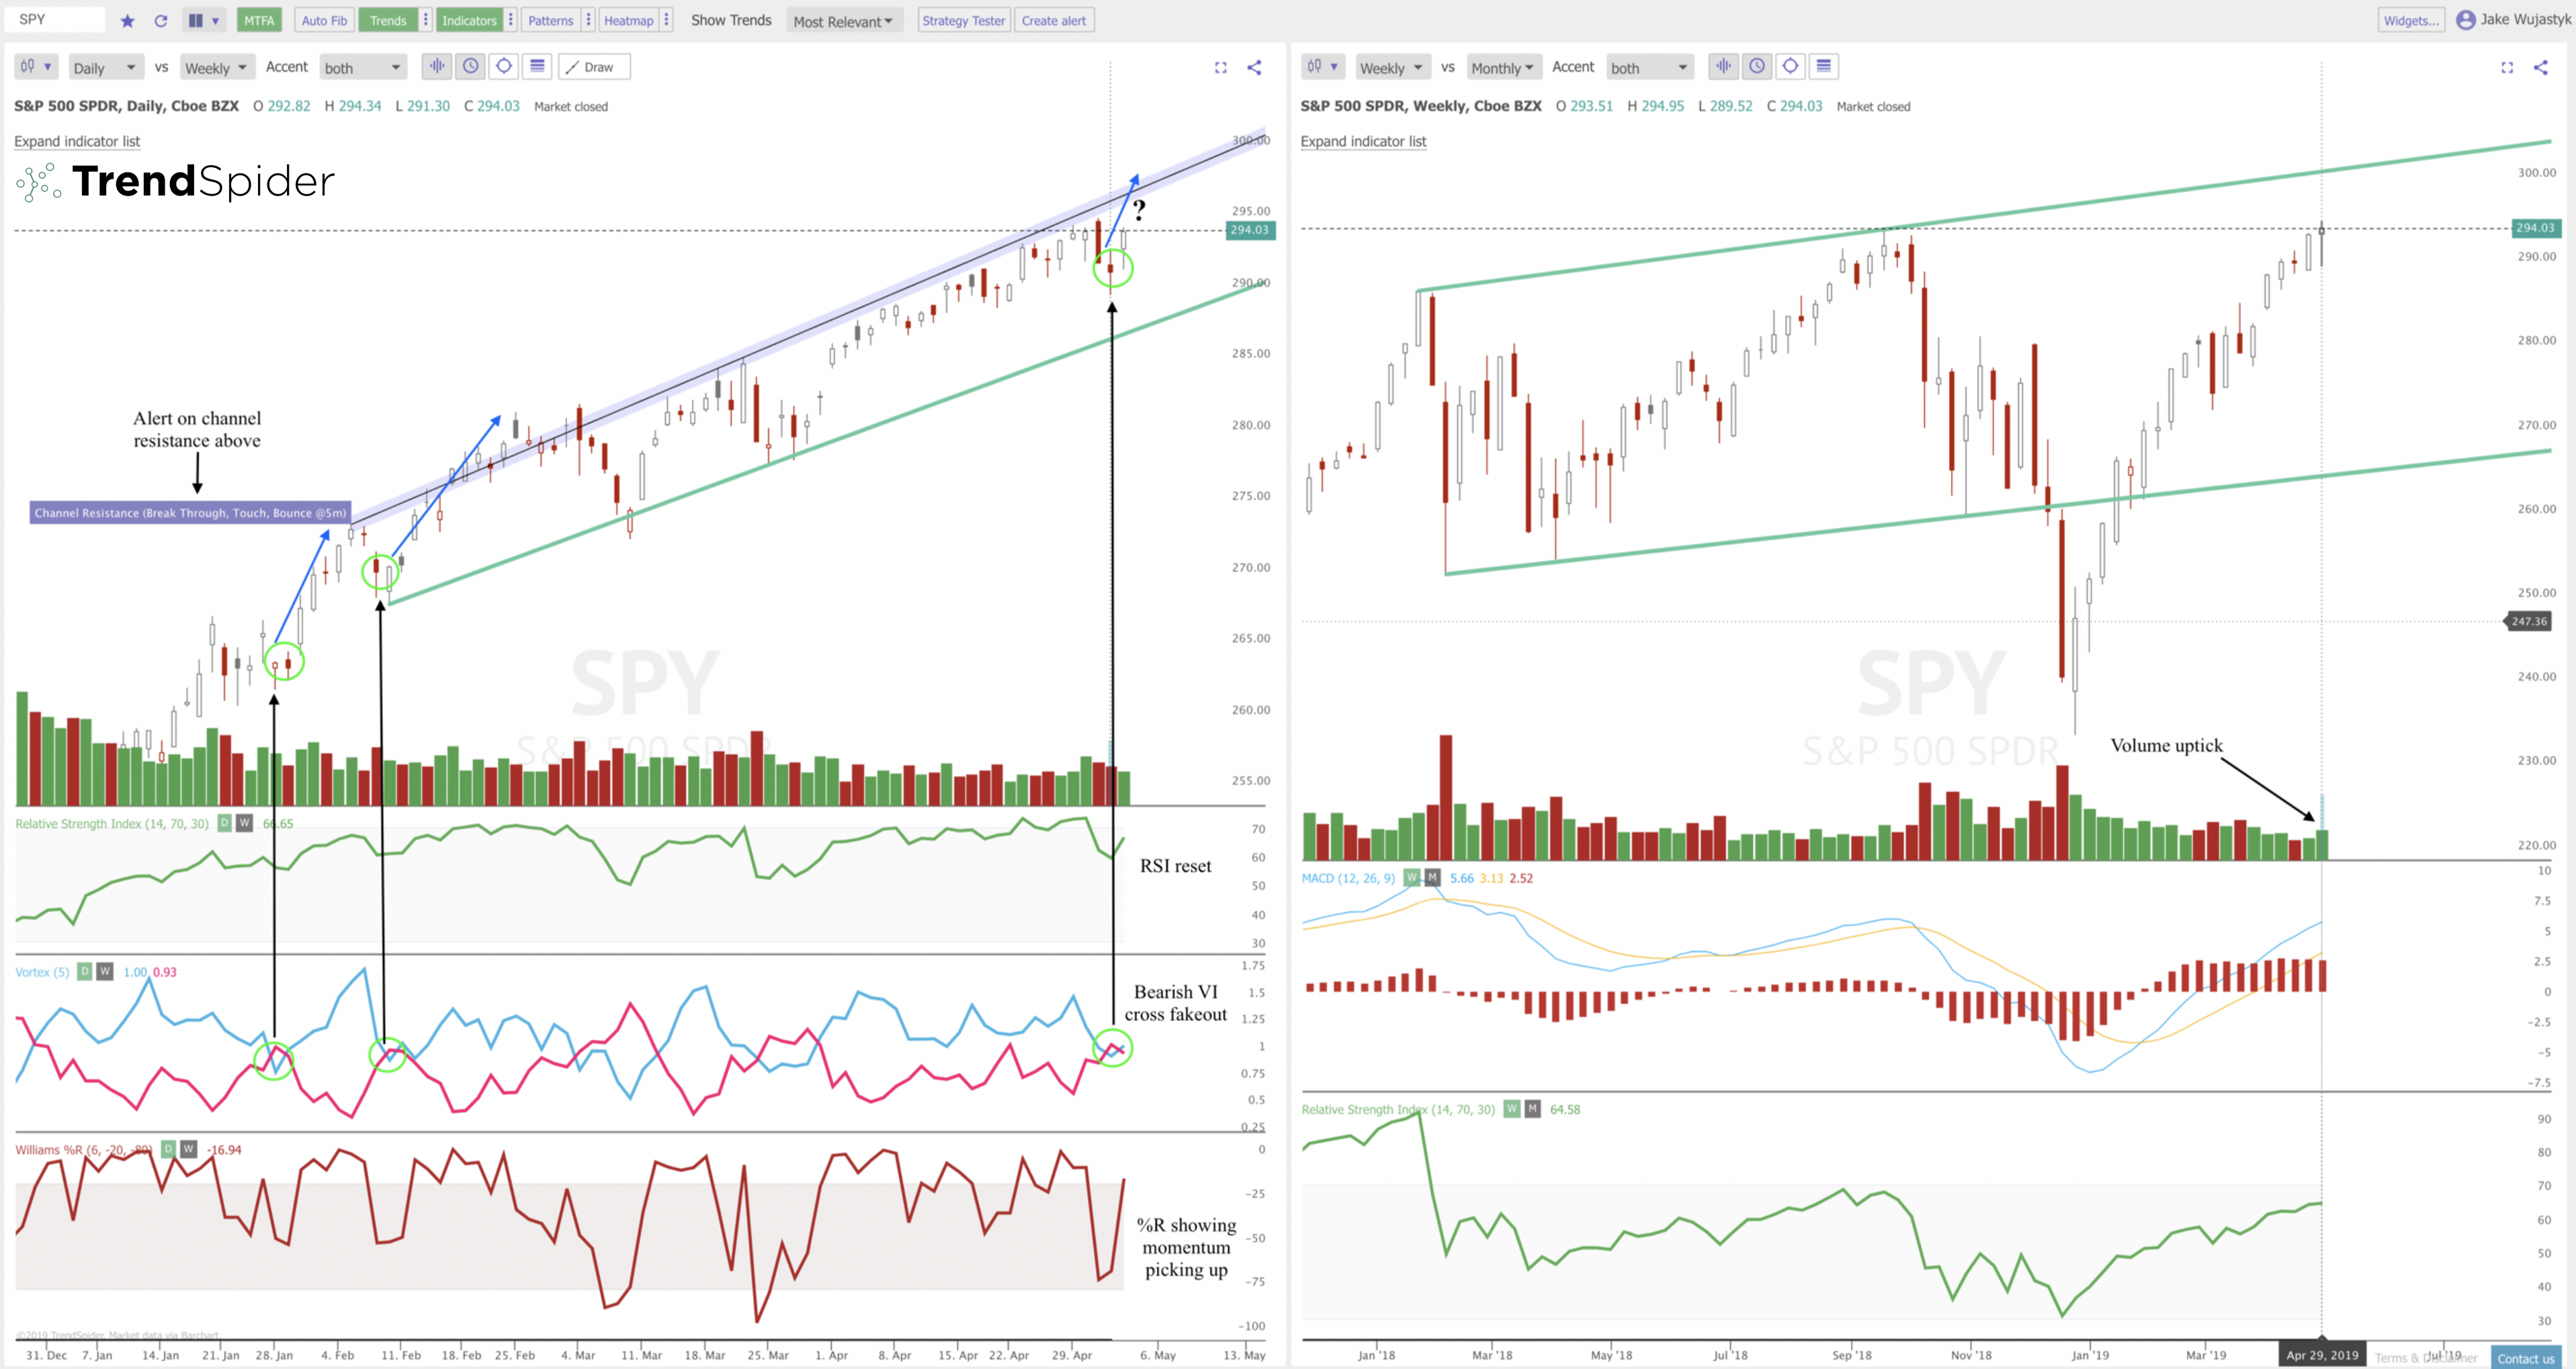 Bullish Patterns Versus the Bearish Indicators on the Charts